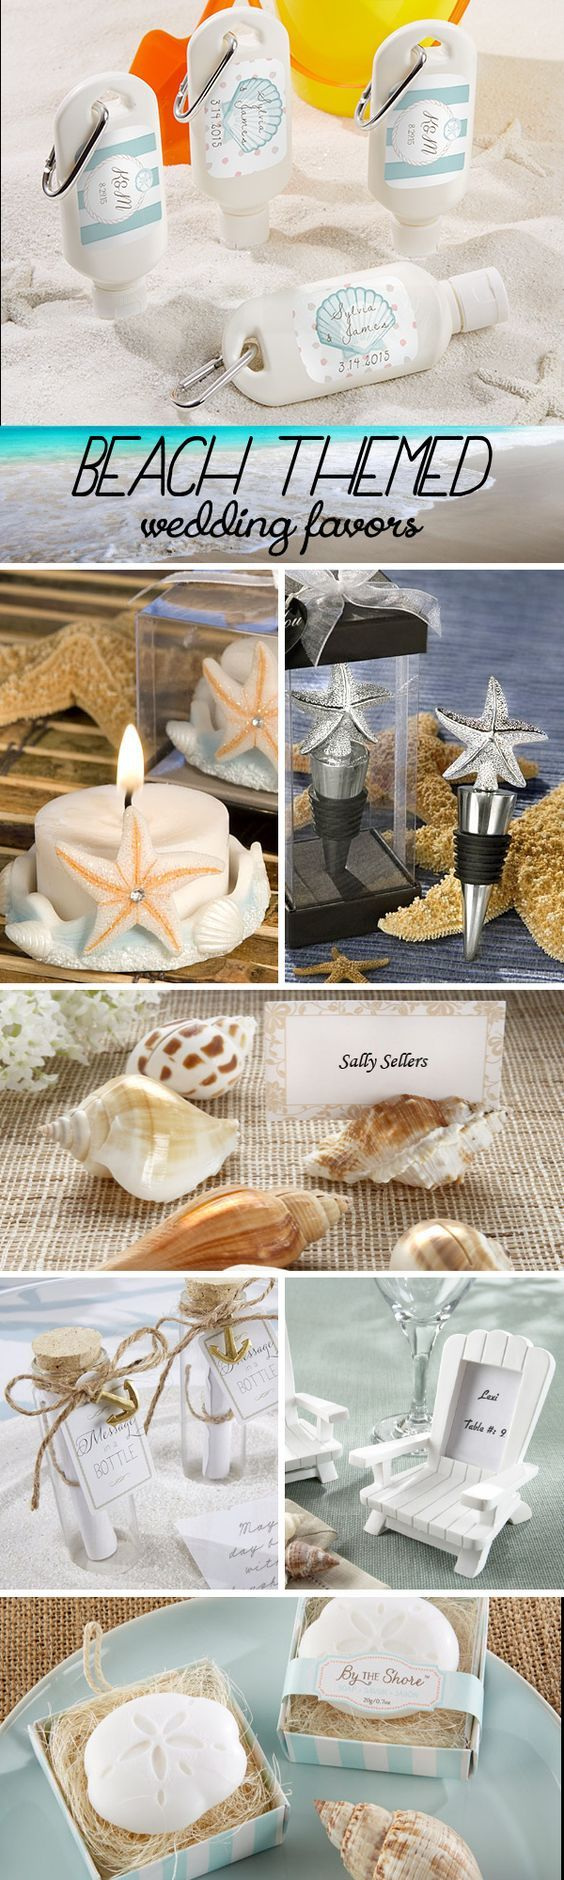 Gmail beach theme pictures - 100 Beach Themed Wedding Favors That Your Guests Will Love